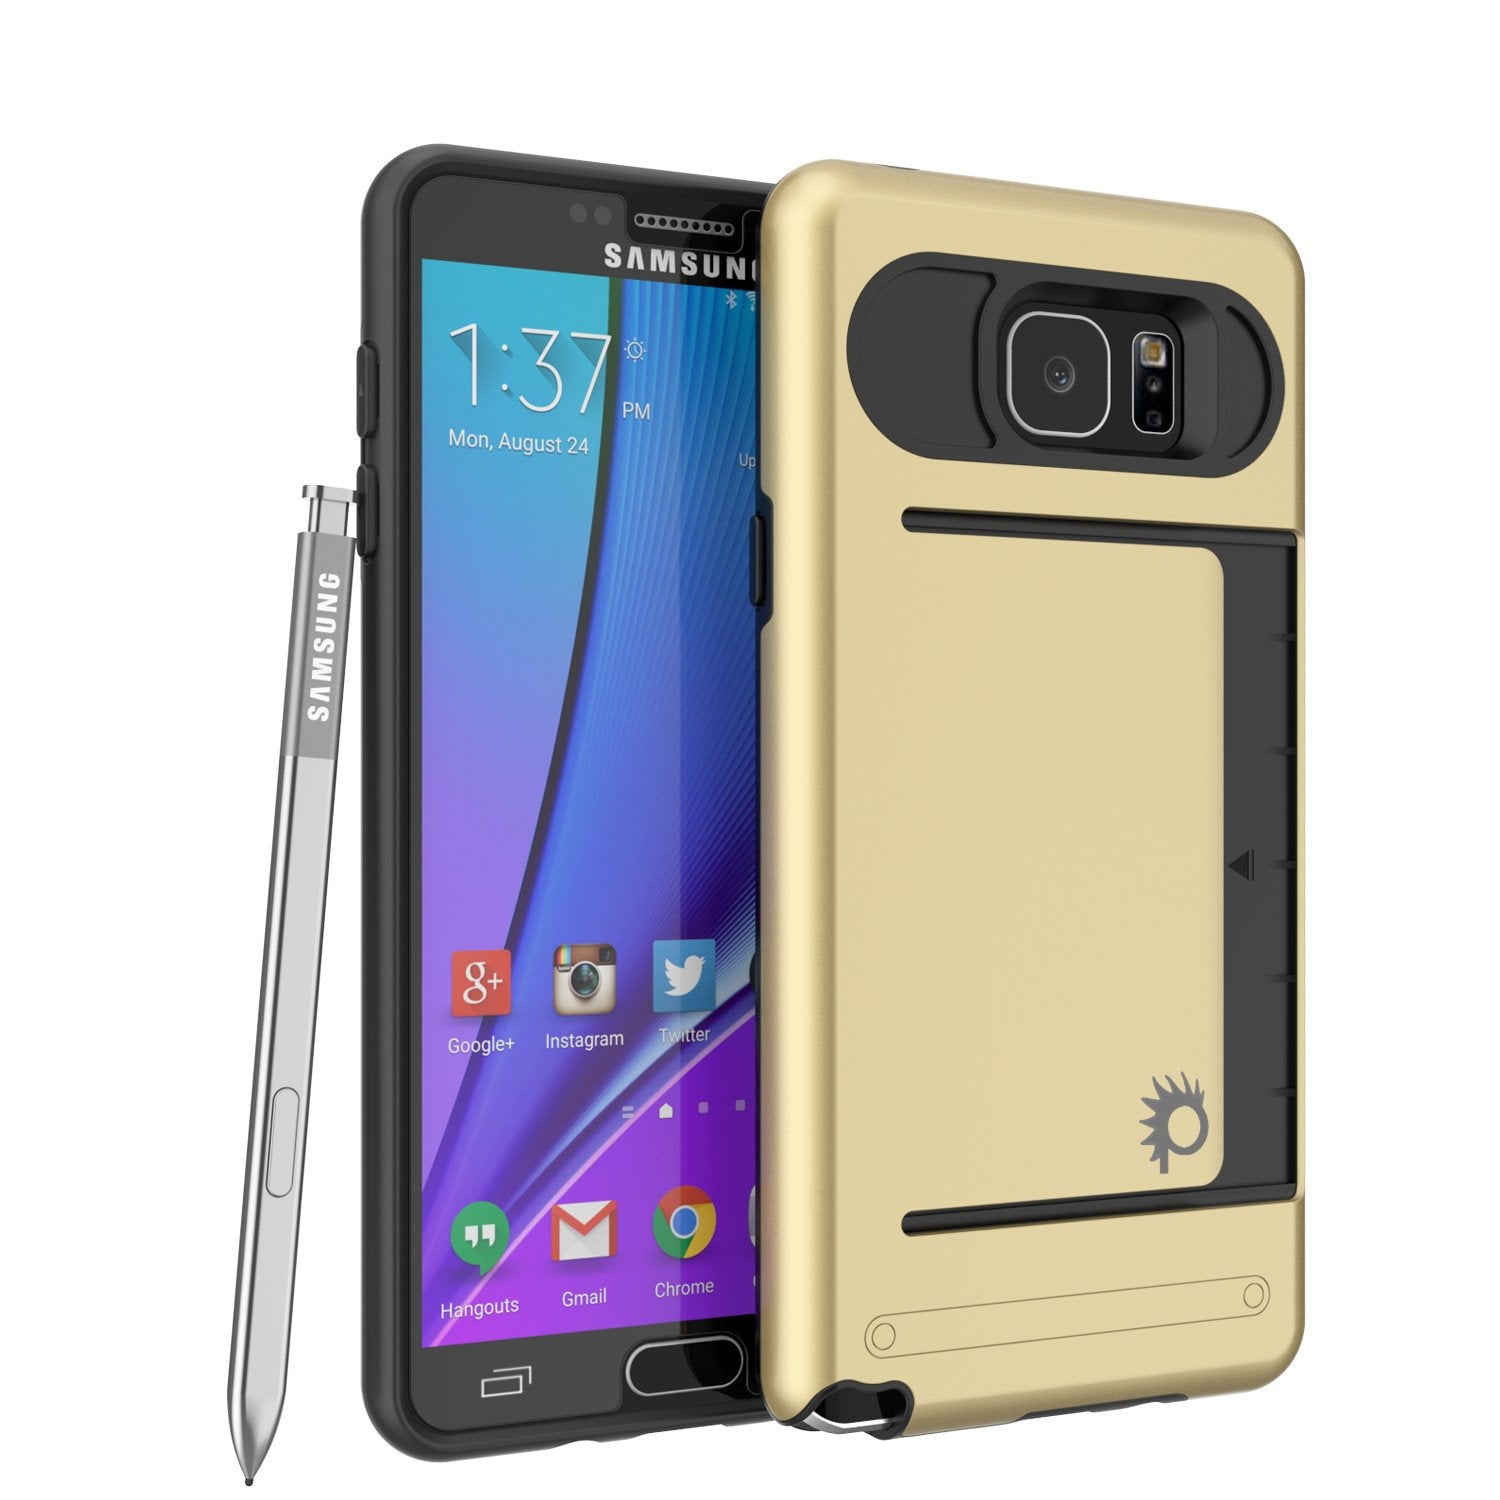 Galaxy Note 5 Case PunkCase CLUTCH Gold Series Slim Armor Soft Cover Case w/ Tempered Glass